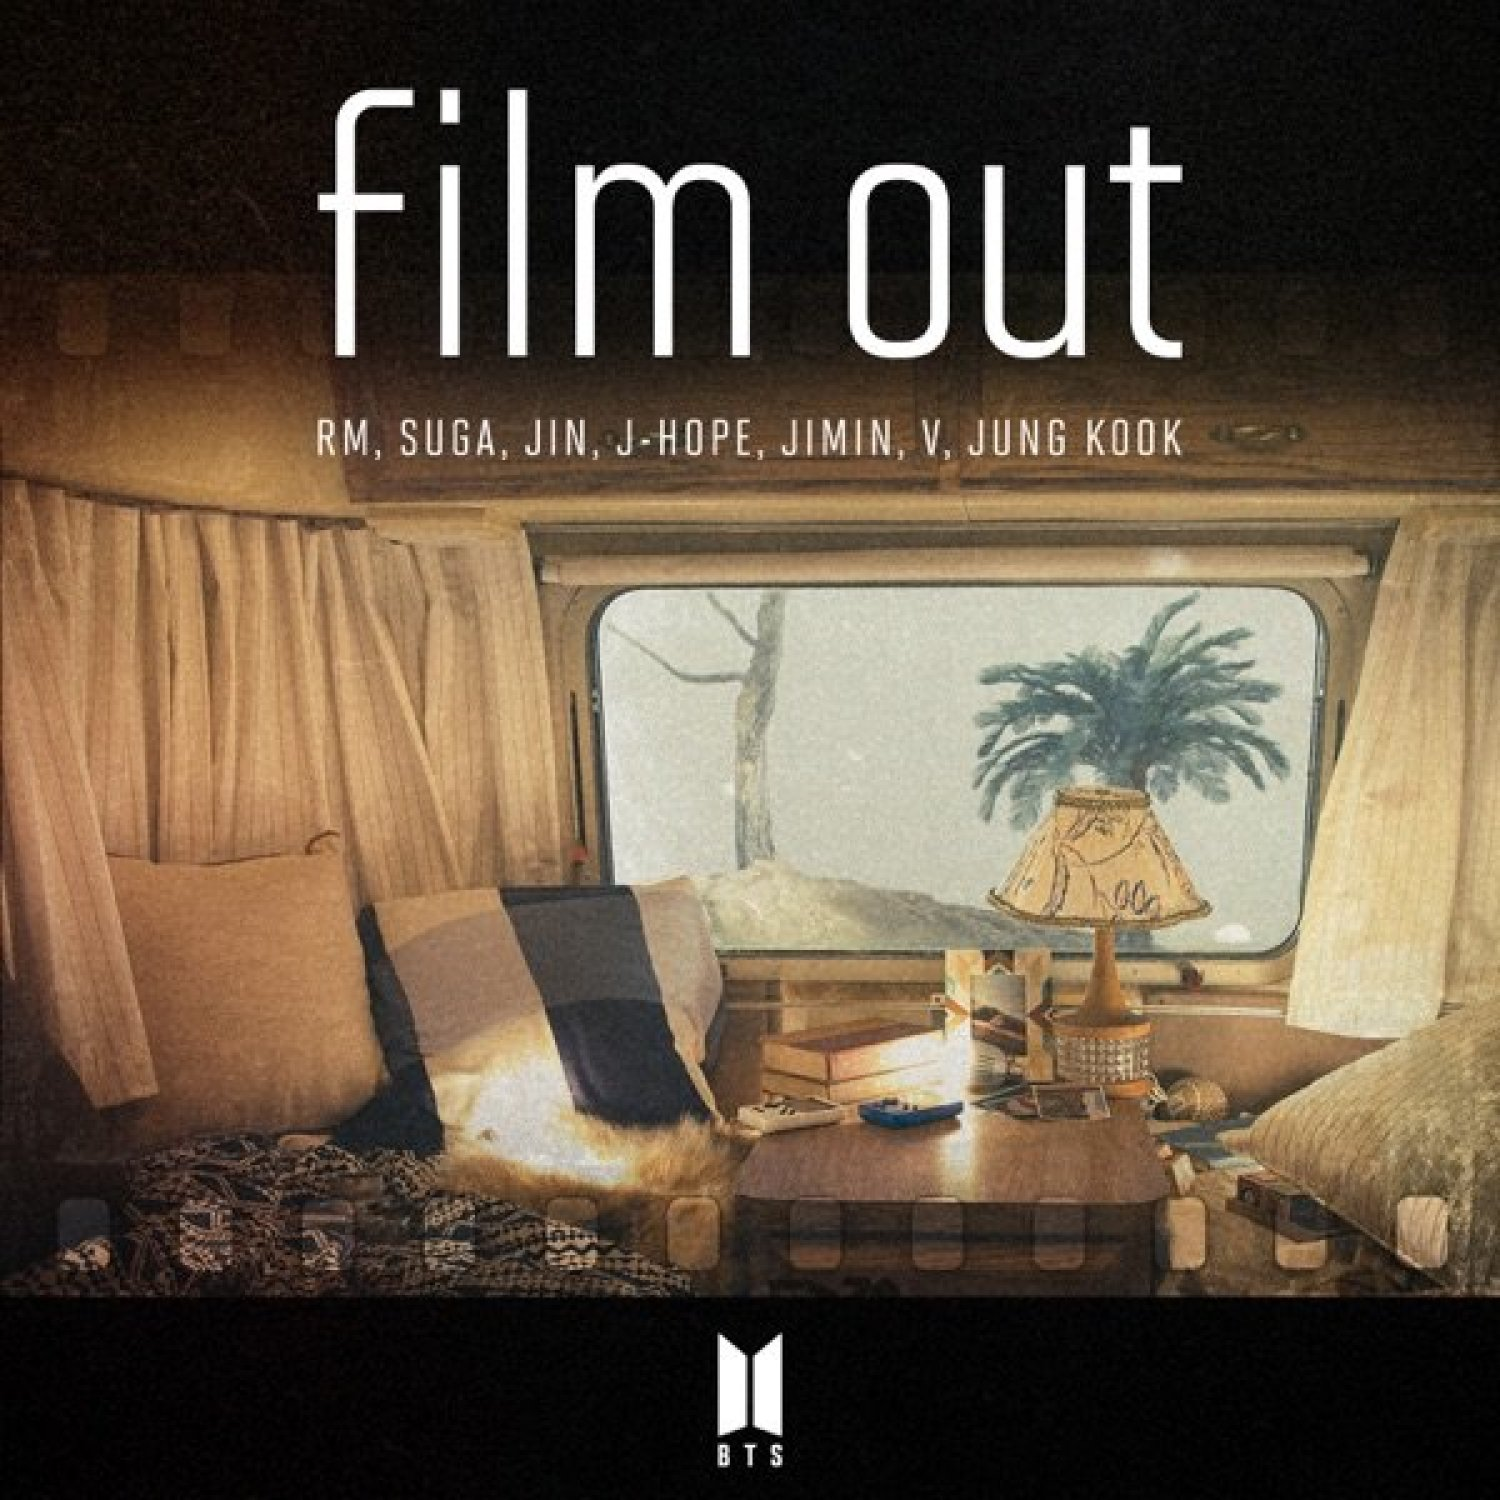 DOWNLOAD MP3: BTS – Film Out AUDIO 320kps